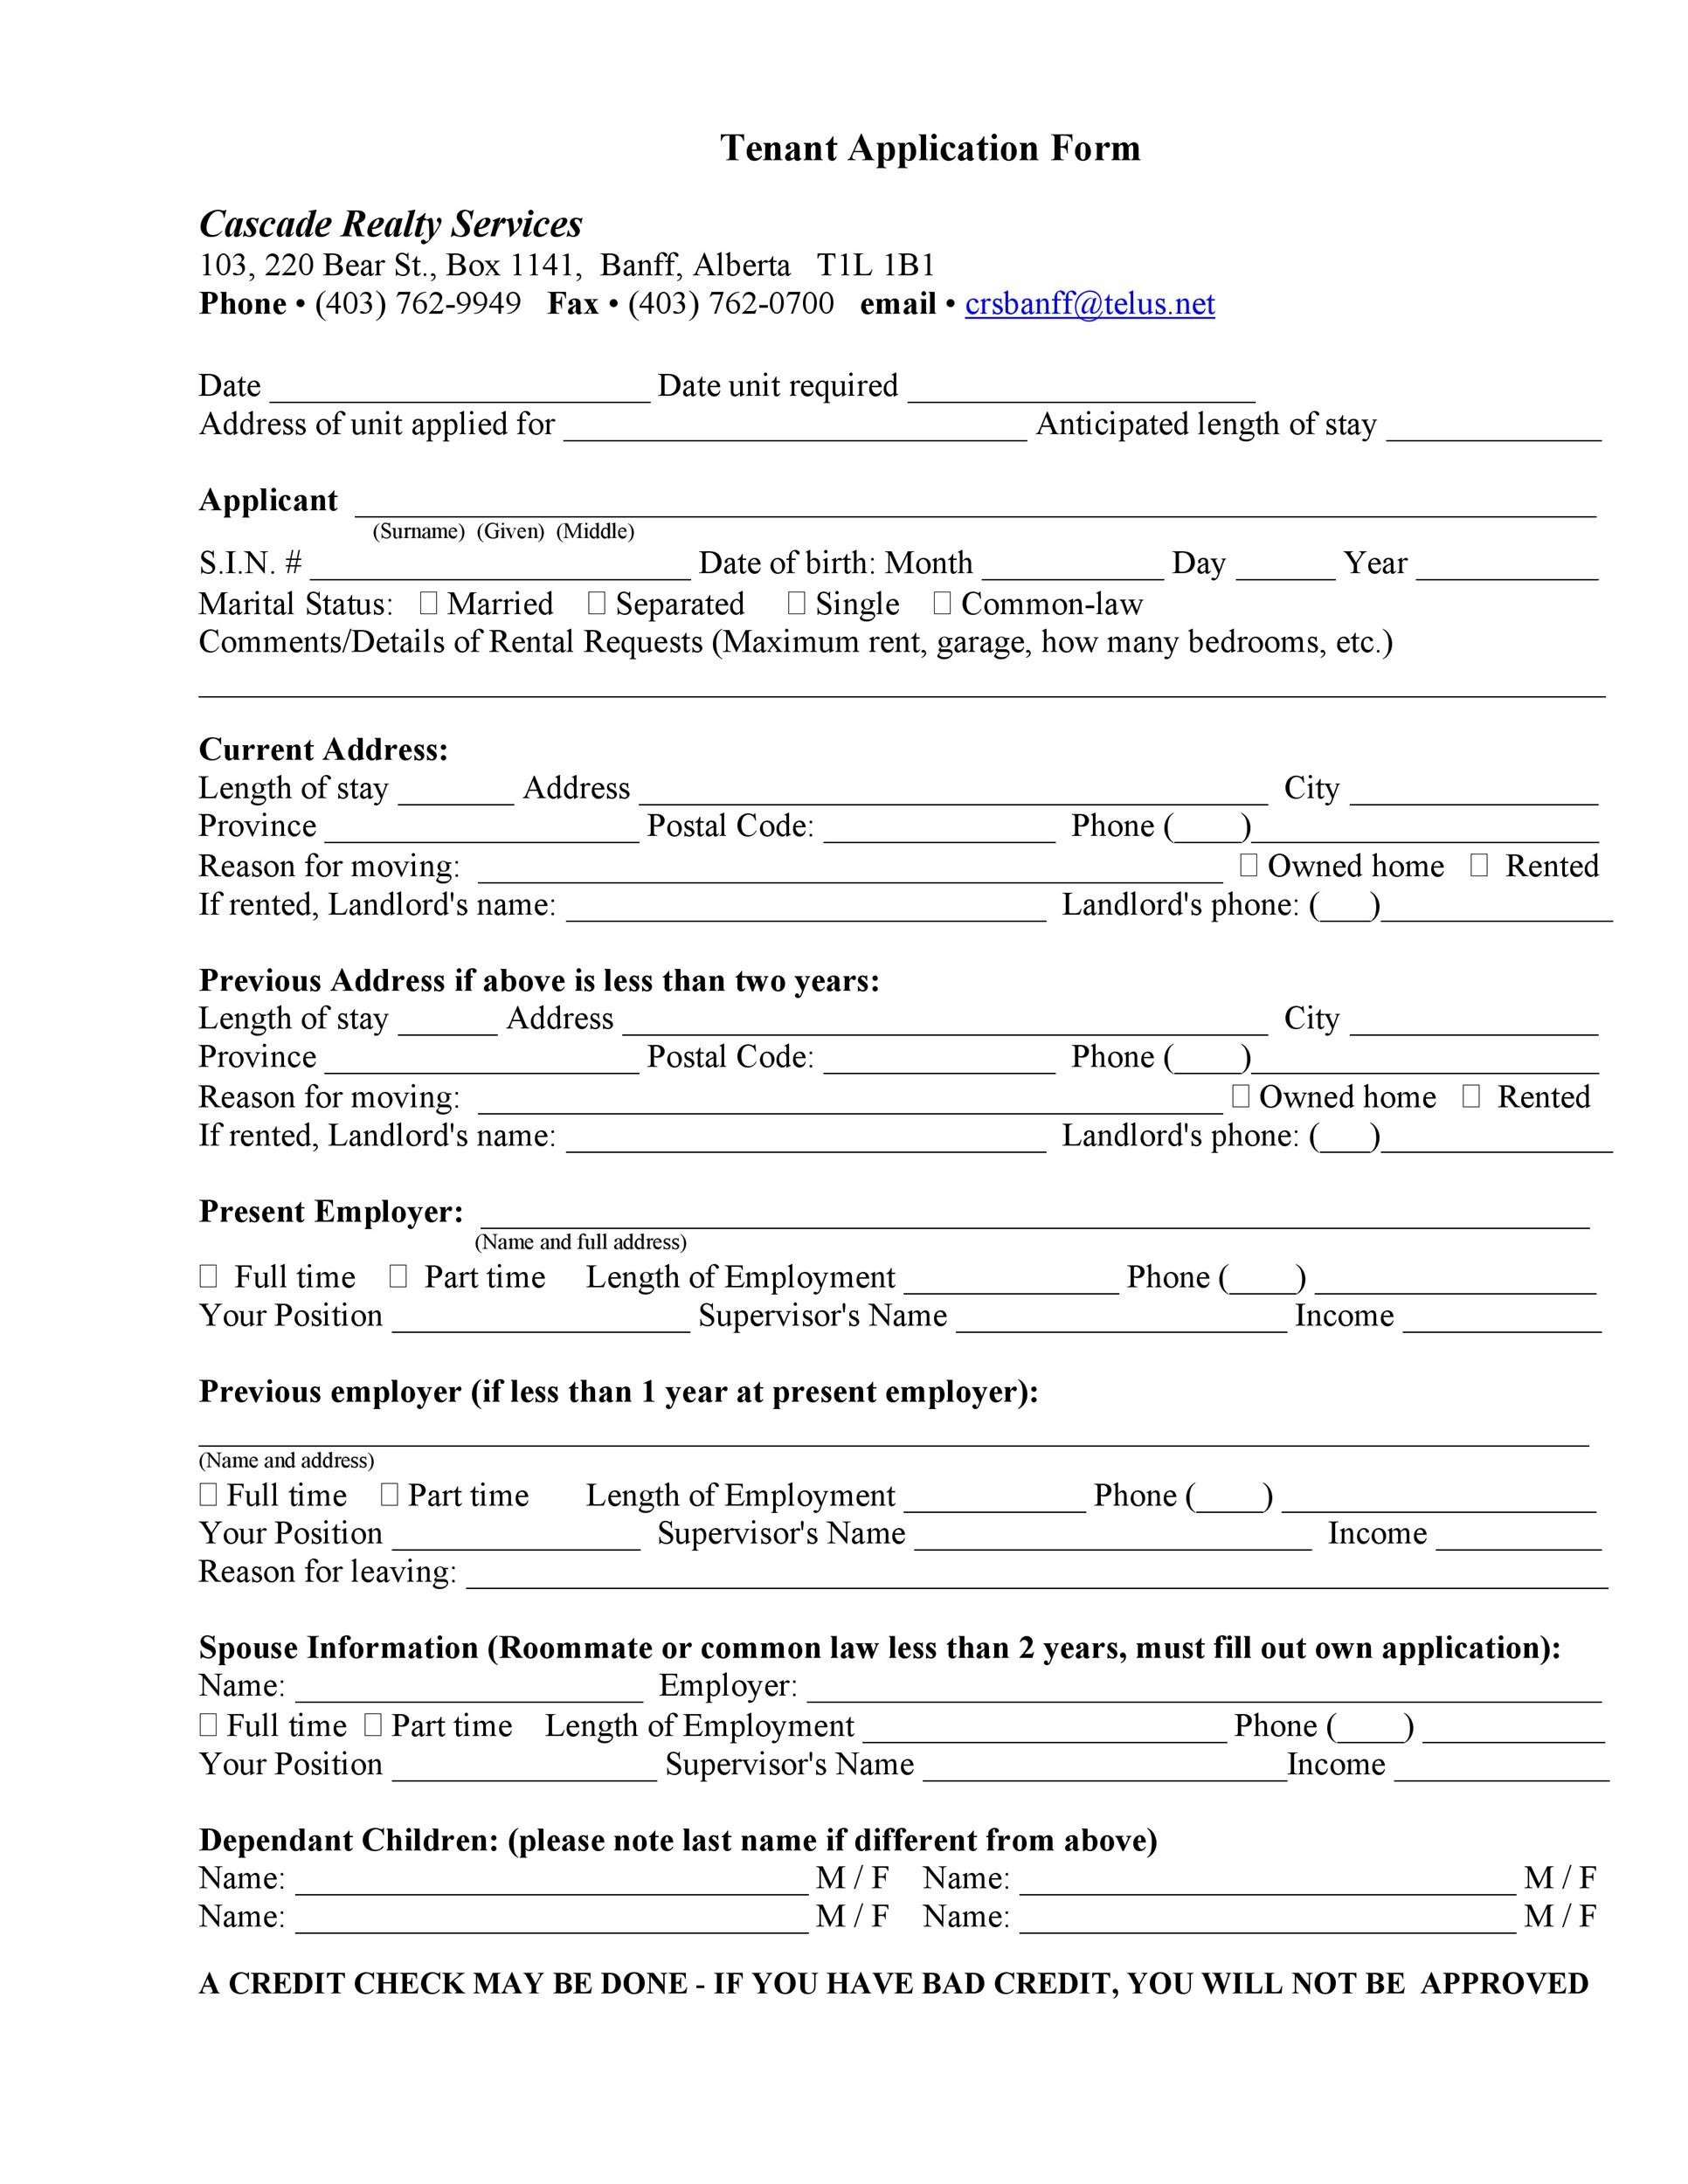 42 Rental Application Forms \ Lease Agreement Templates - background check consent forms